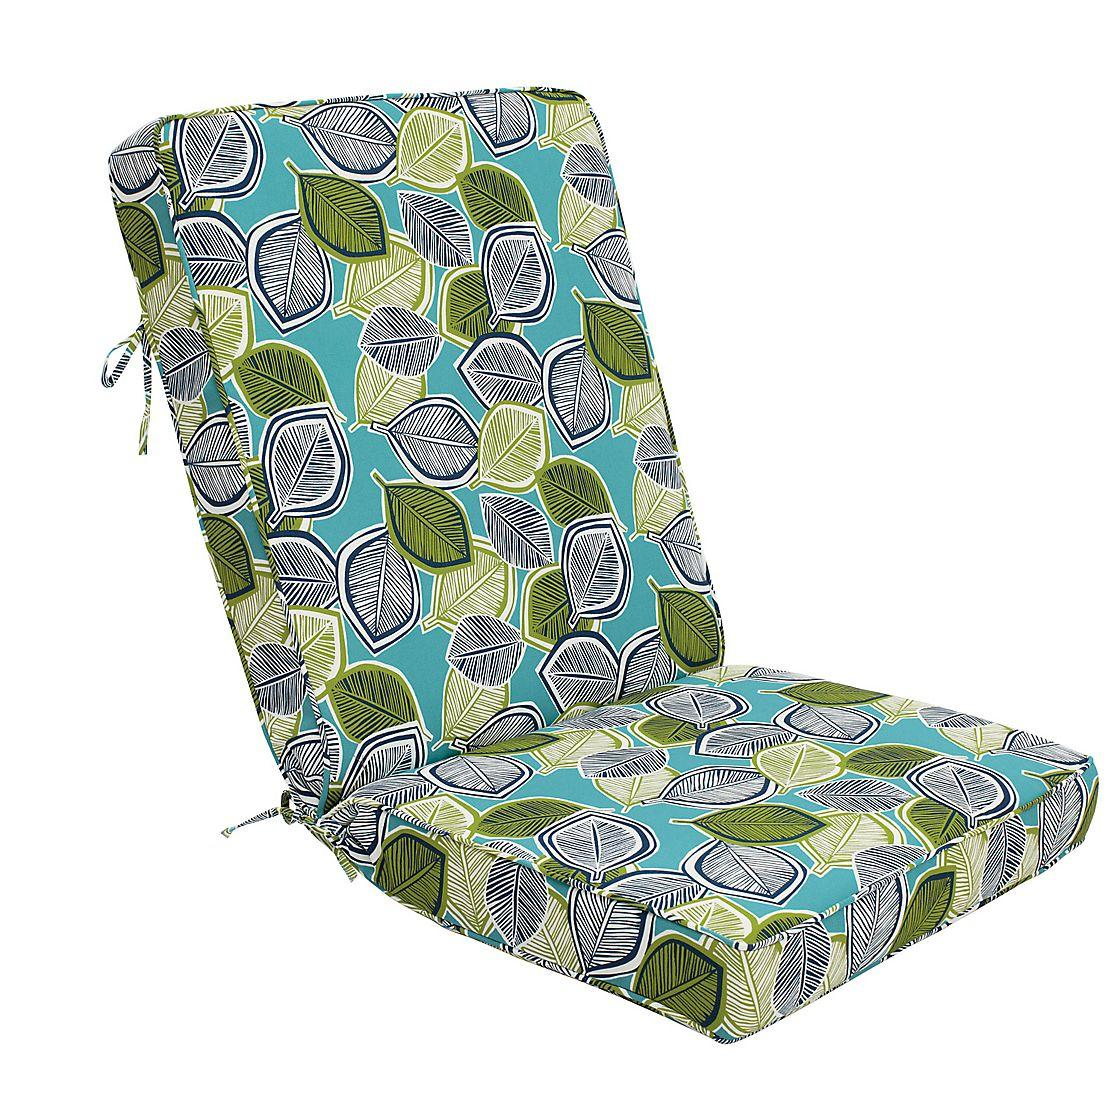 Outdoor Lounge Chair Seat & Back Cushion (44x22x3